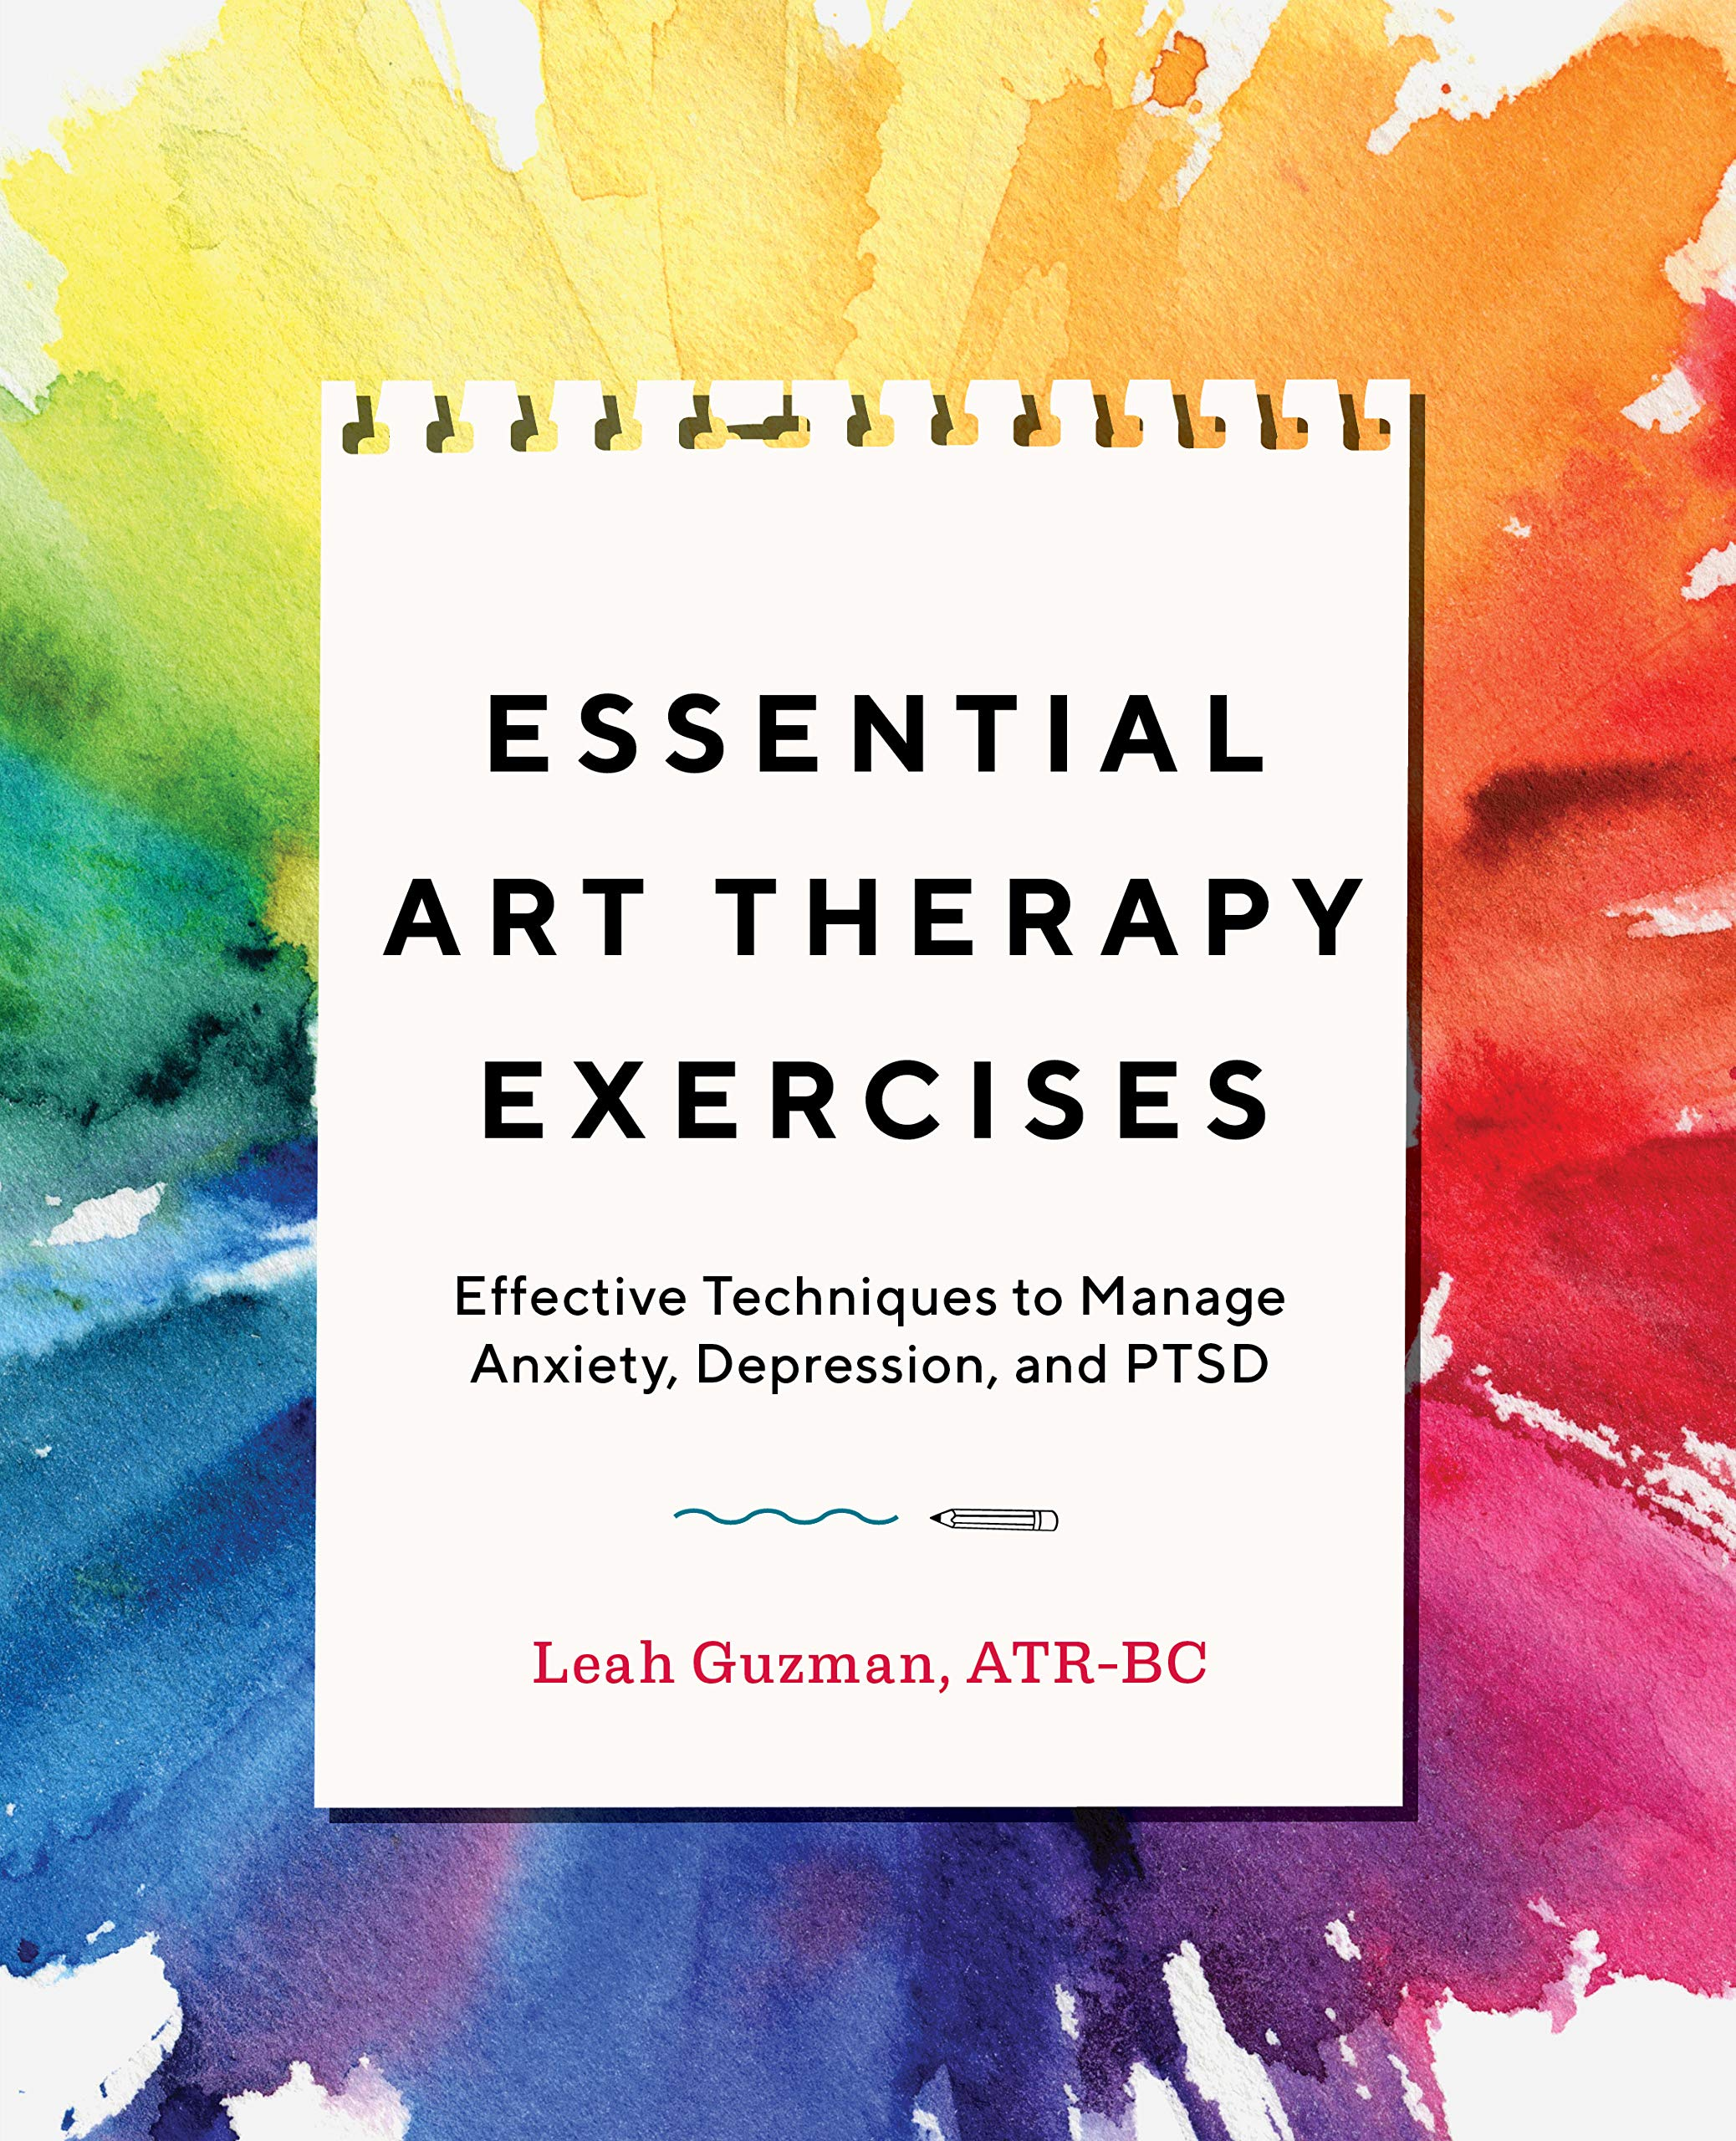 91 bCkJXzSL - Essential Art Therapy Exercises: Effective Techniques to Manage Anxiety, Depression, and PTSD